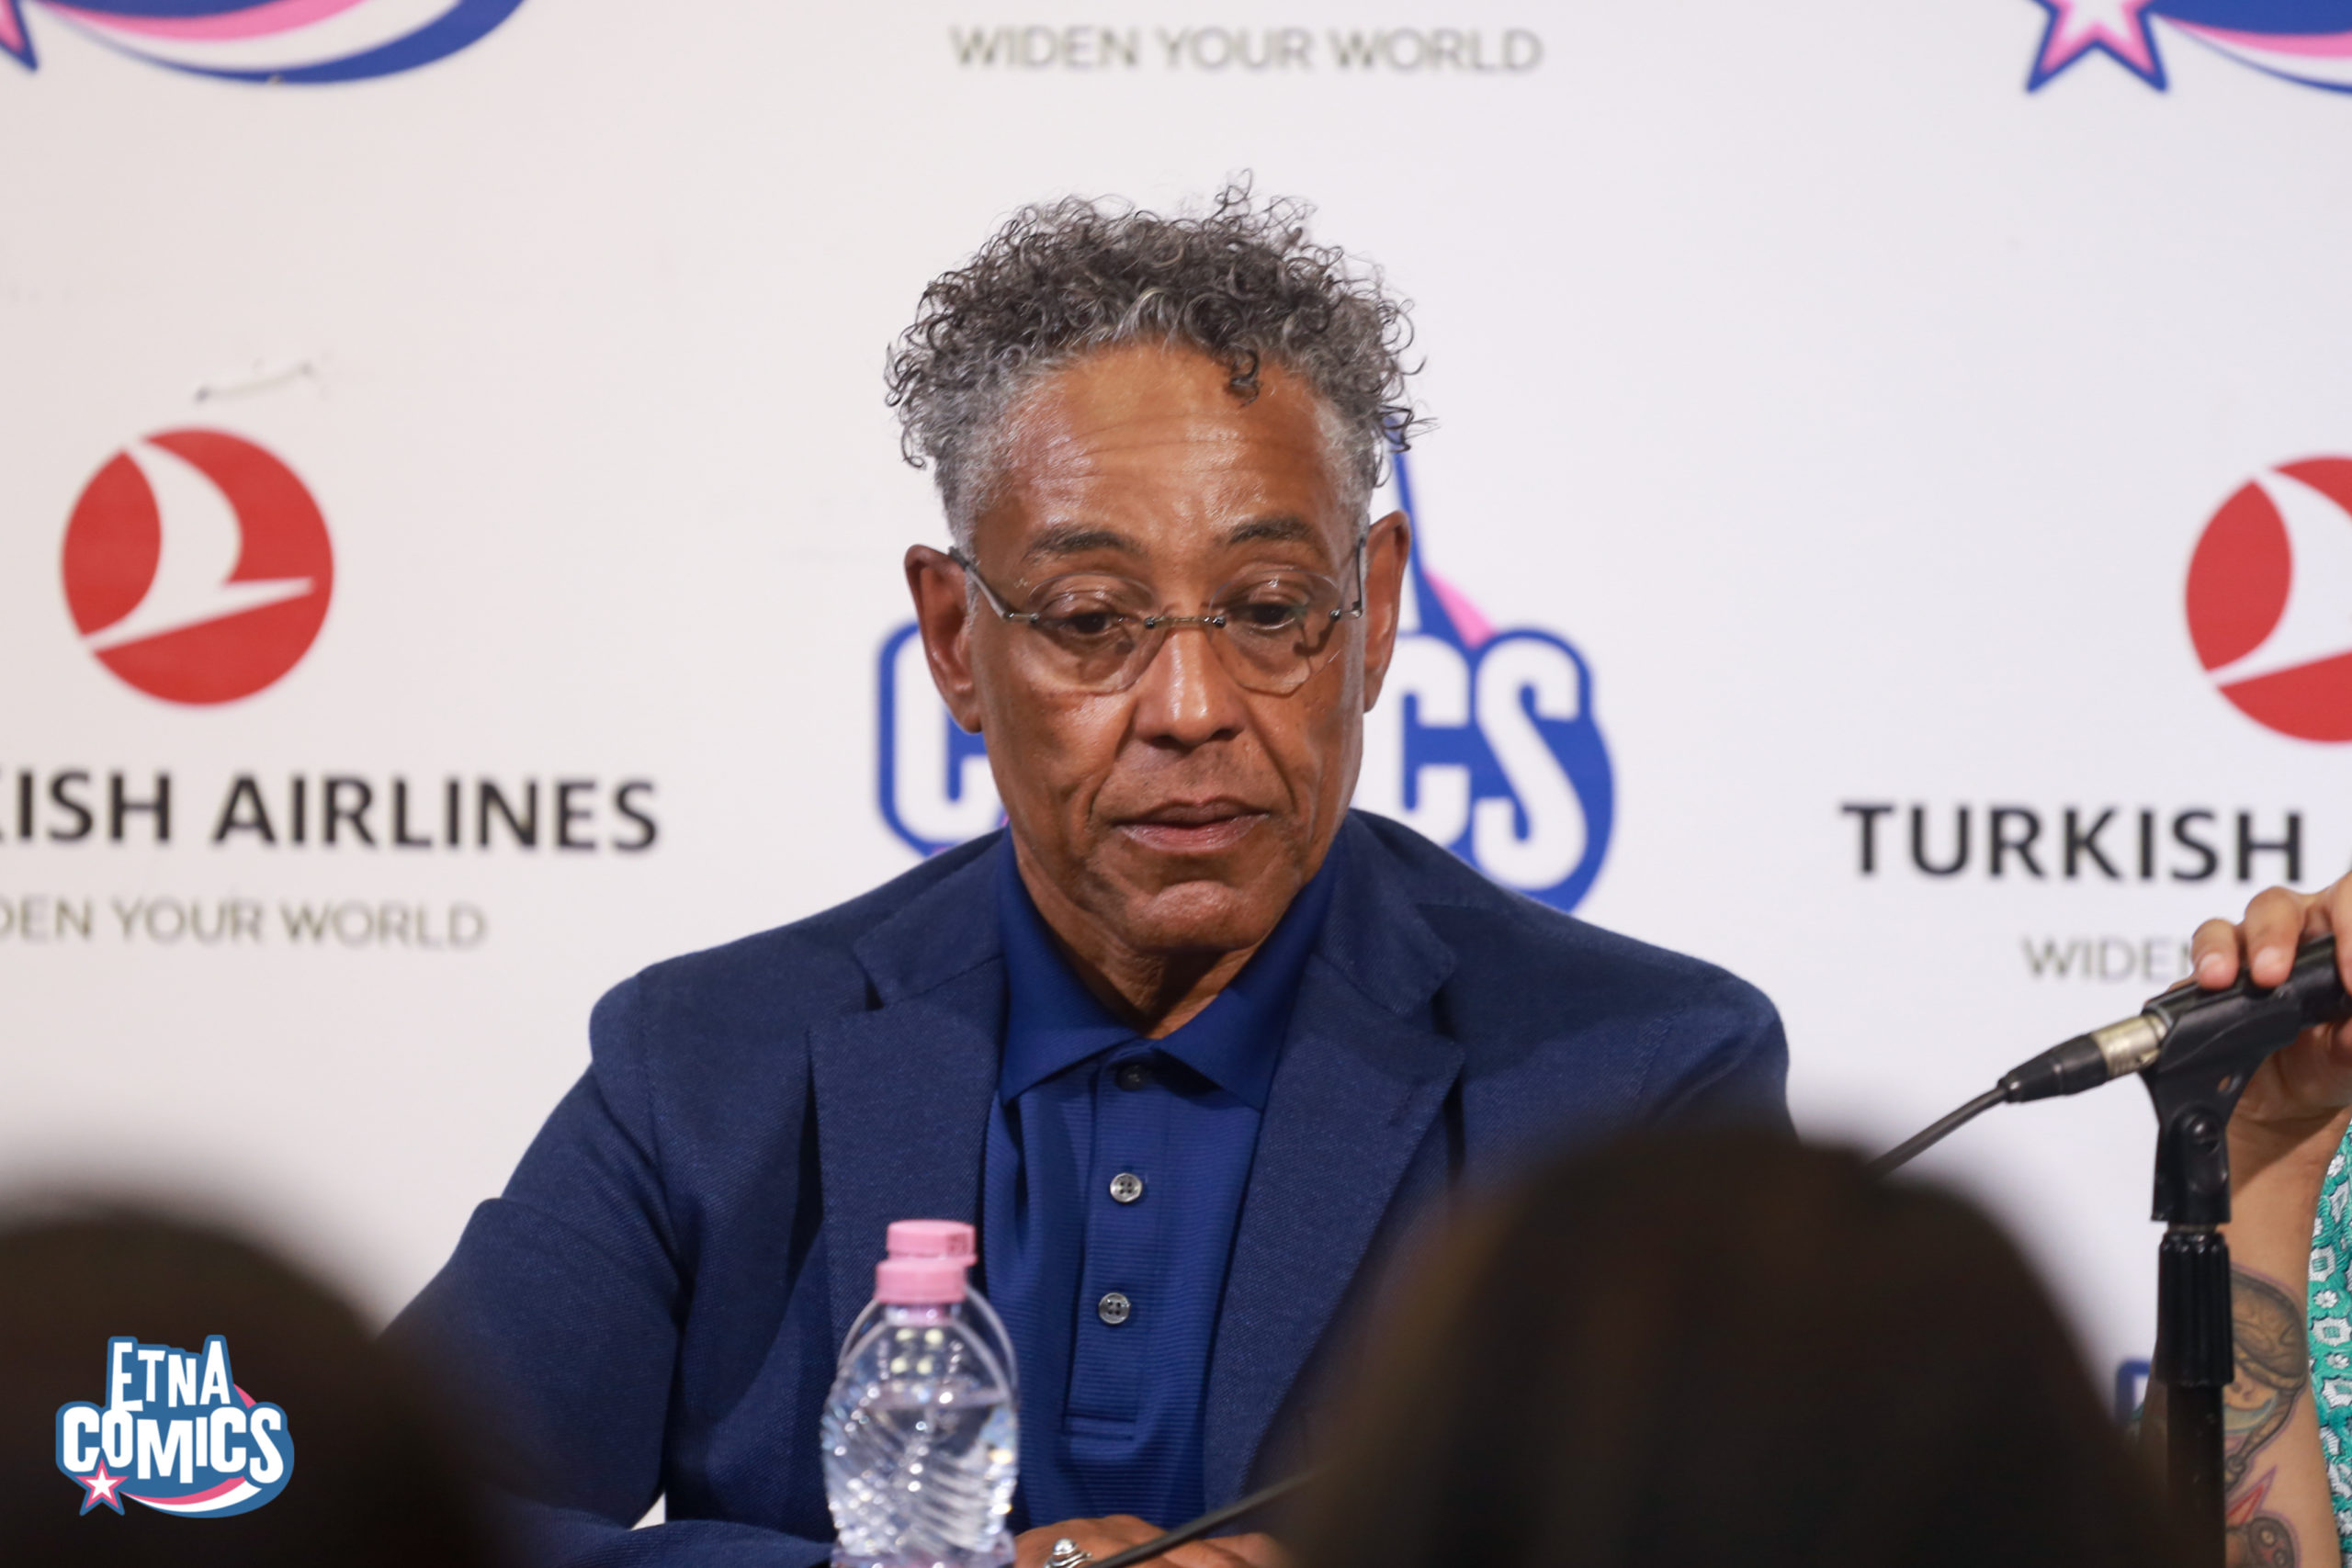 Giancarlo Esposito Etna Comics 2019 Keo Marketing